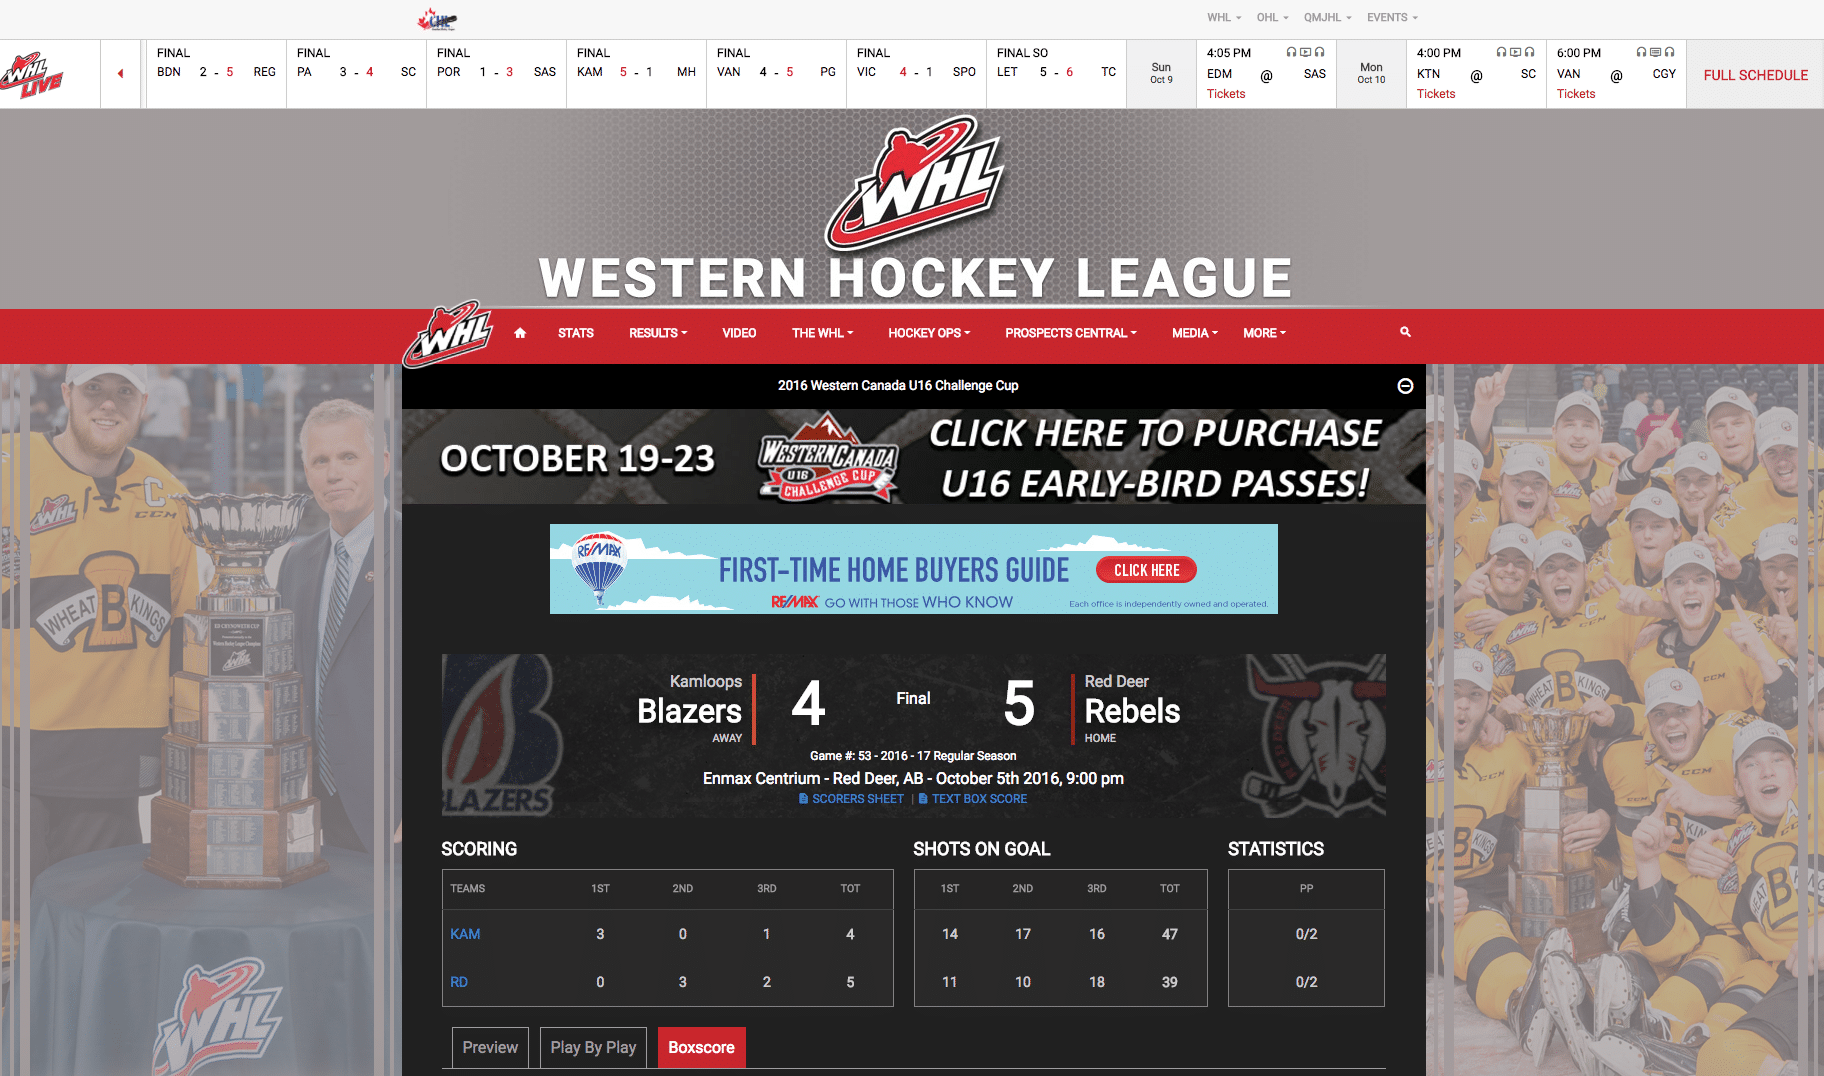 Stadium Digital Powers Canadian Hockey League Technology Behind CHL Website Network - Sports Techie blog.